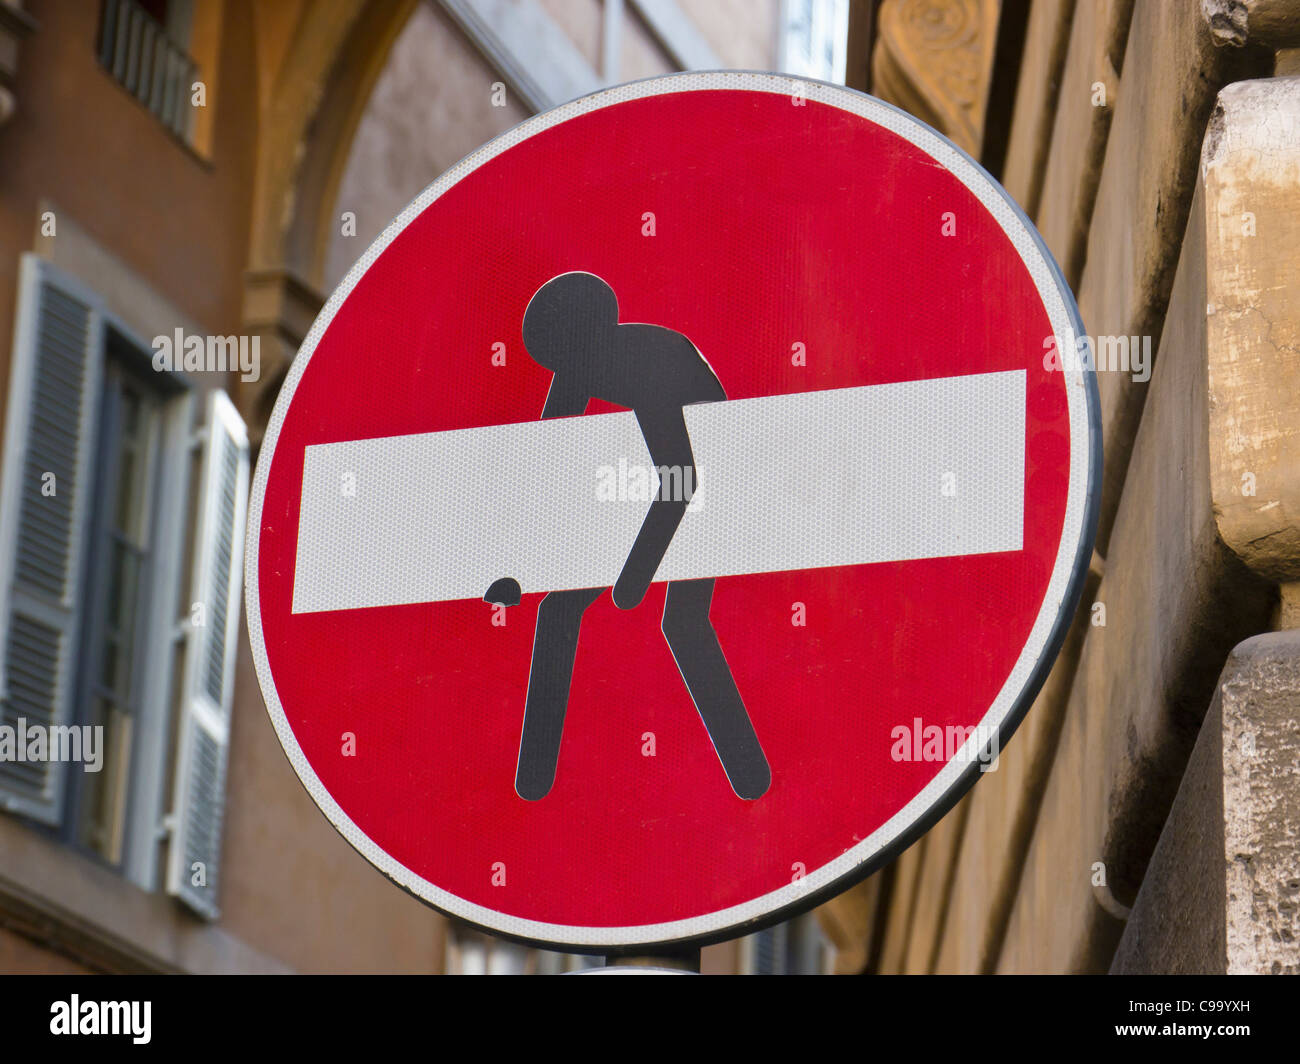 Italy, Rome, Stop sign modified with stealing man, close up - Stock Image